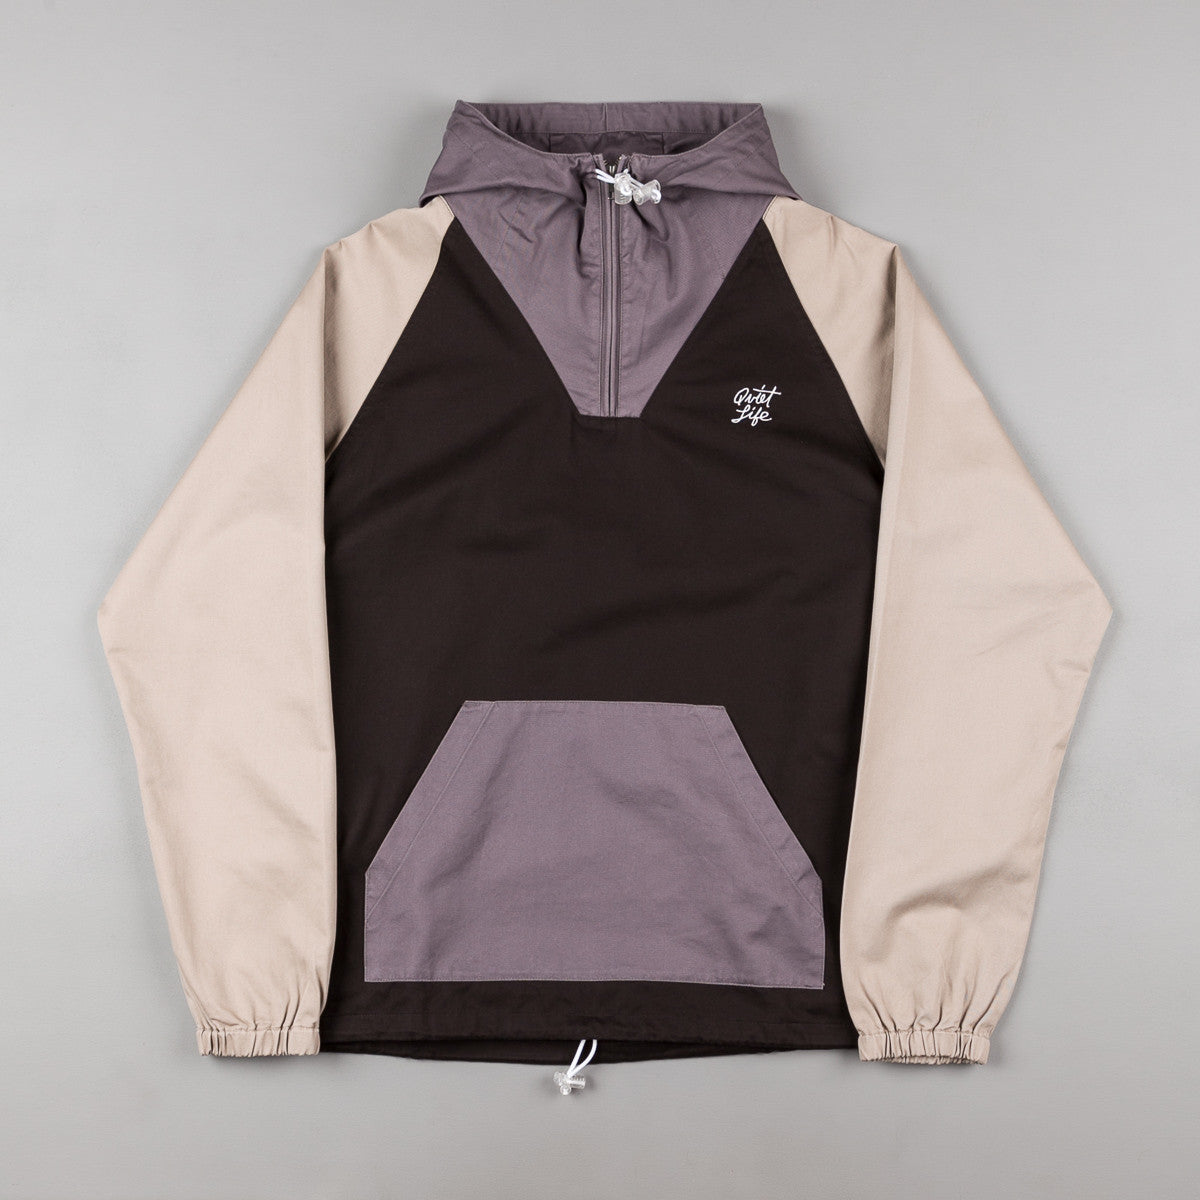 The Quiet Life Contrast Windy Pullover Jacket - Black / Grey